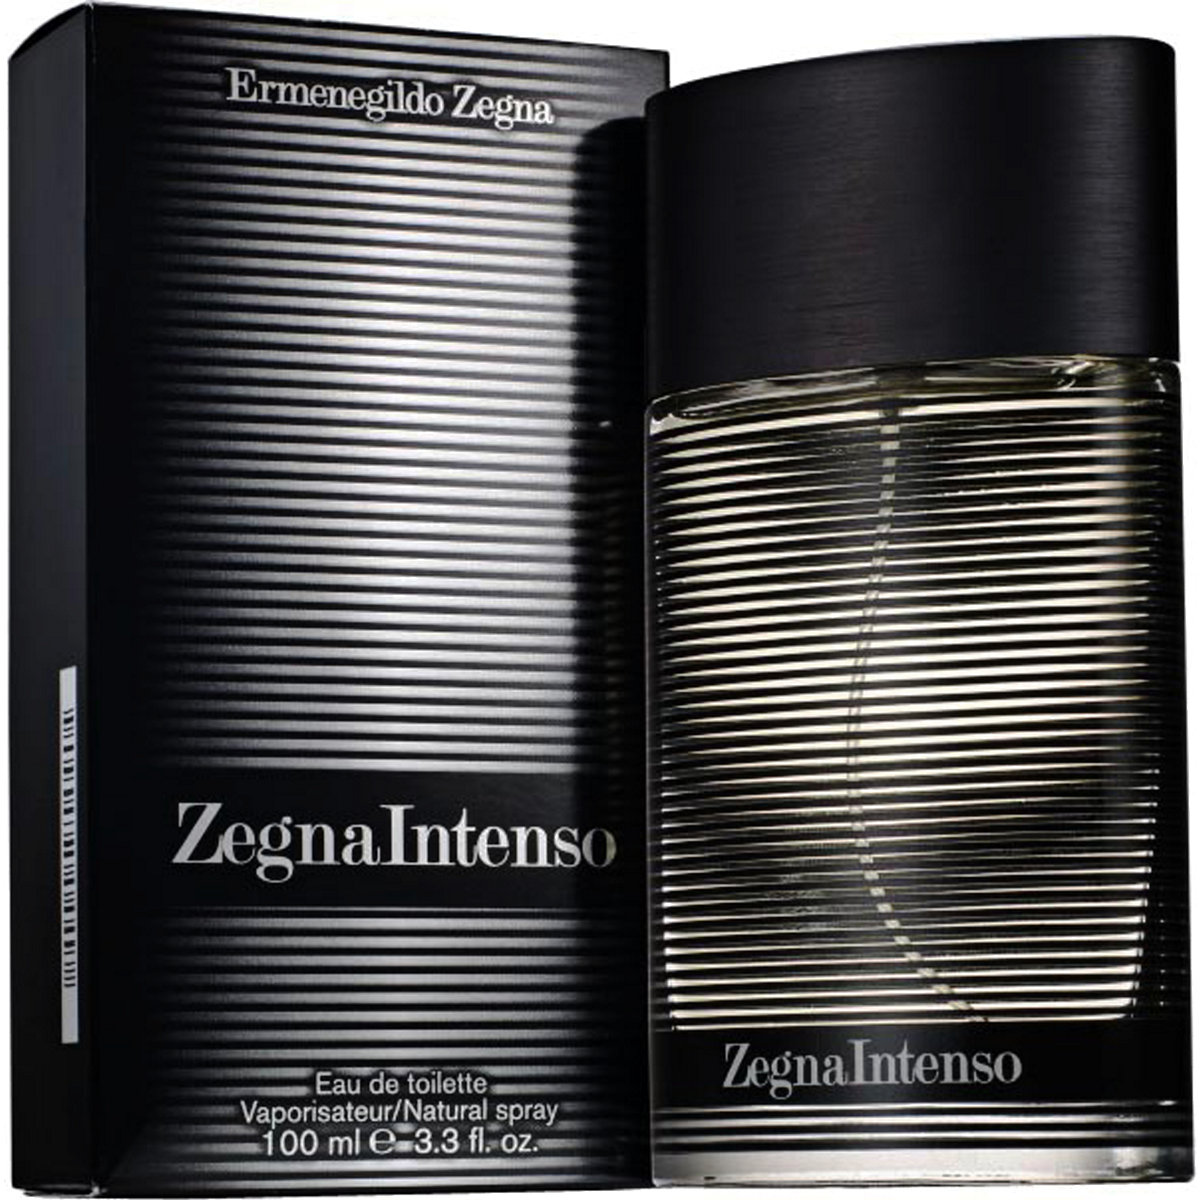 Zegna Intenso Eau de Toilette 100 ml